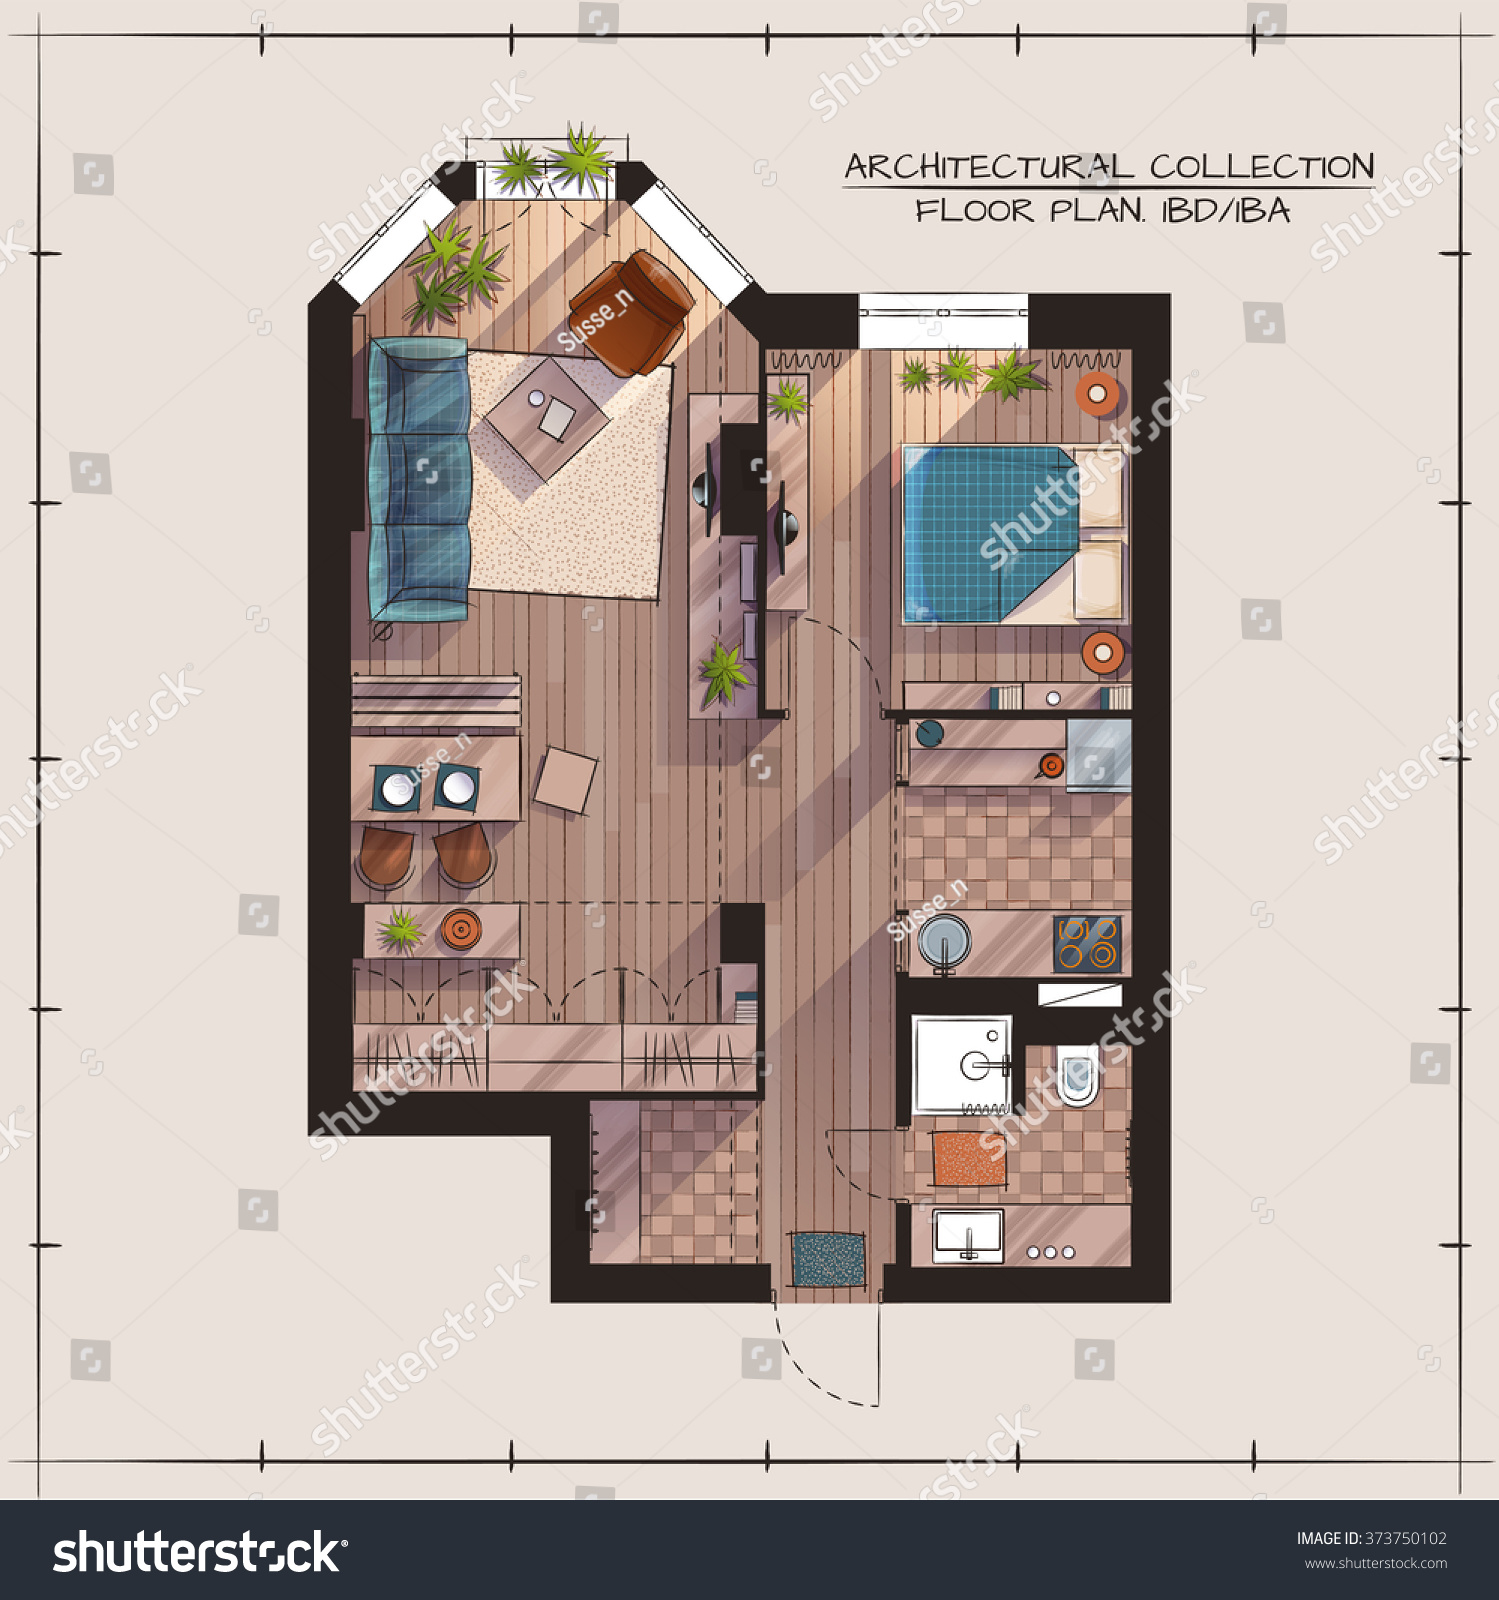 Architectural color floor planstudio apartment one stock for Apartment stock plans